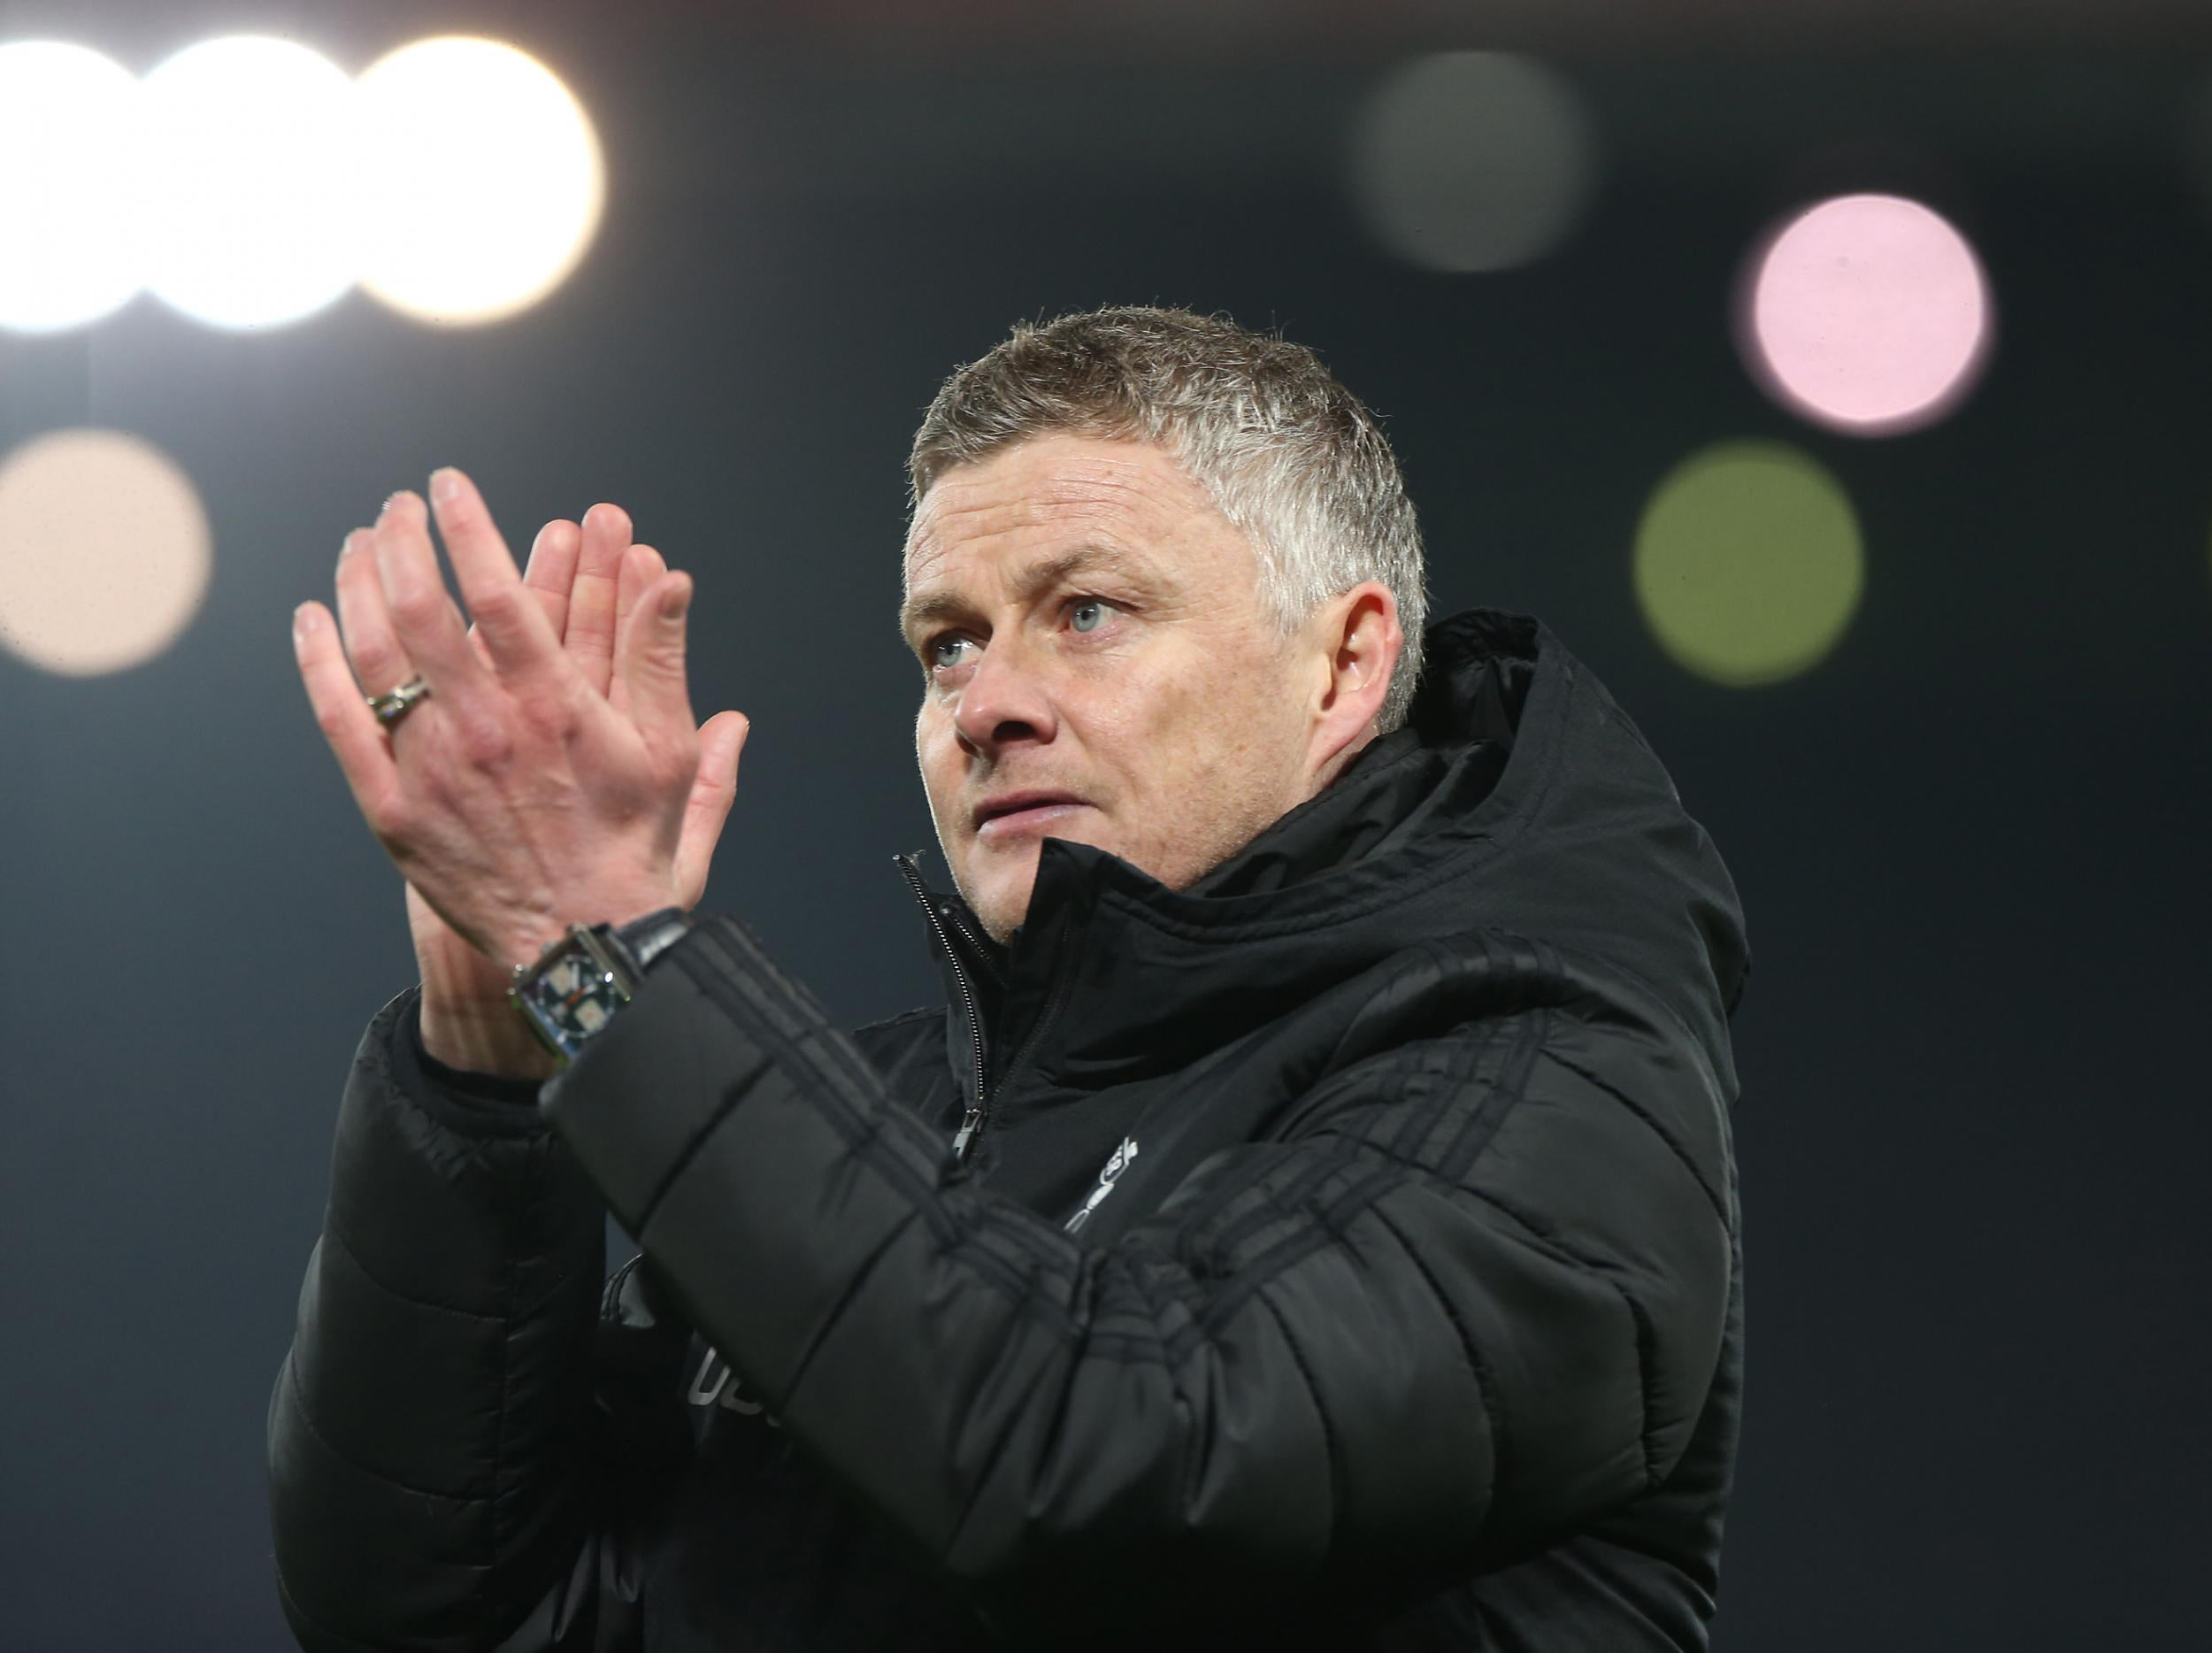 Manchester United's season could now be defined by one rash Ole Gunnar Solskjaer decision